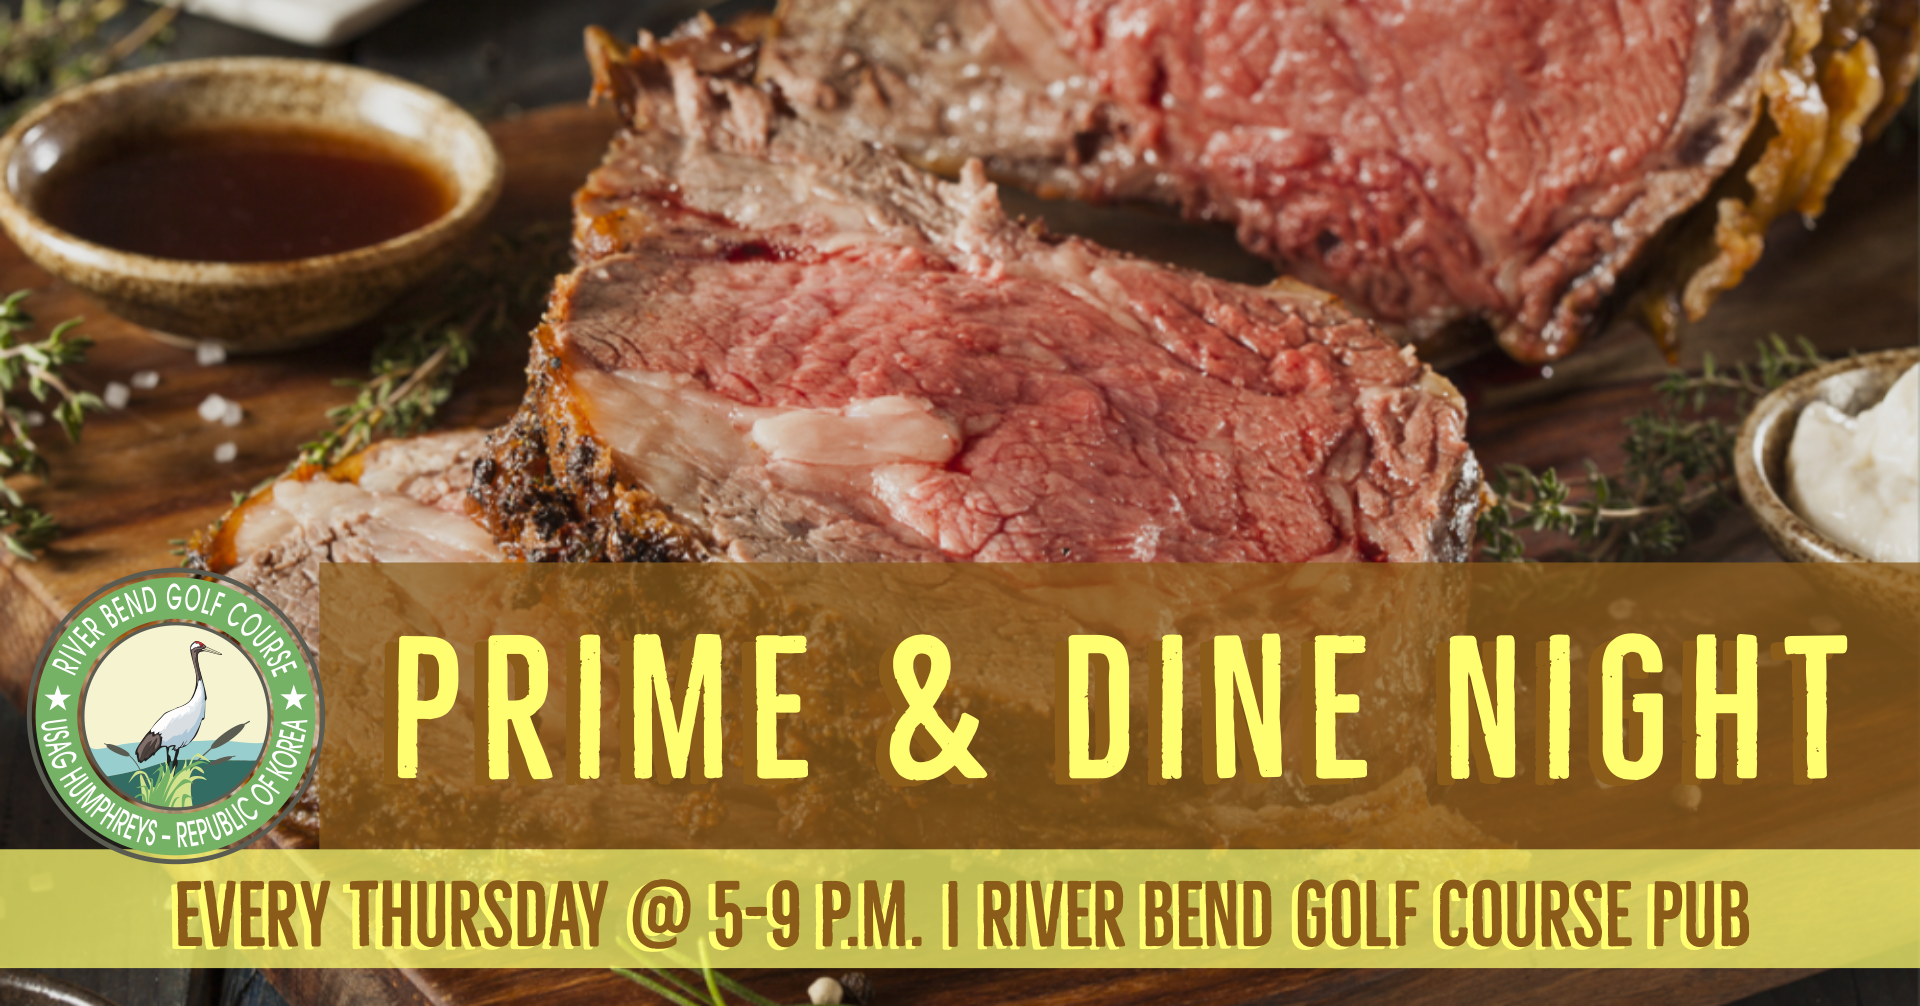 Prime & Dine Night